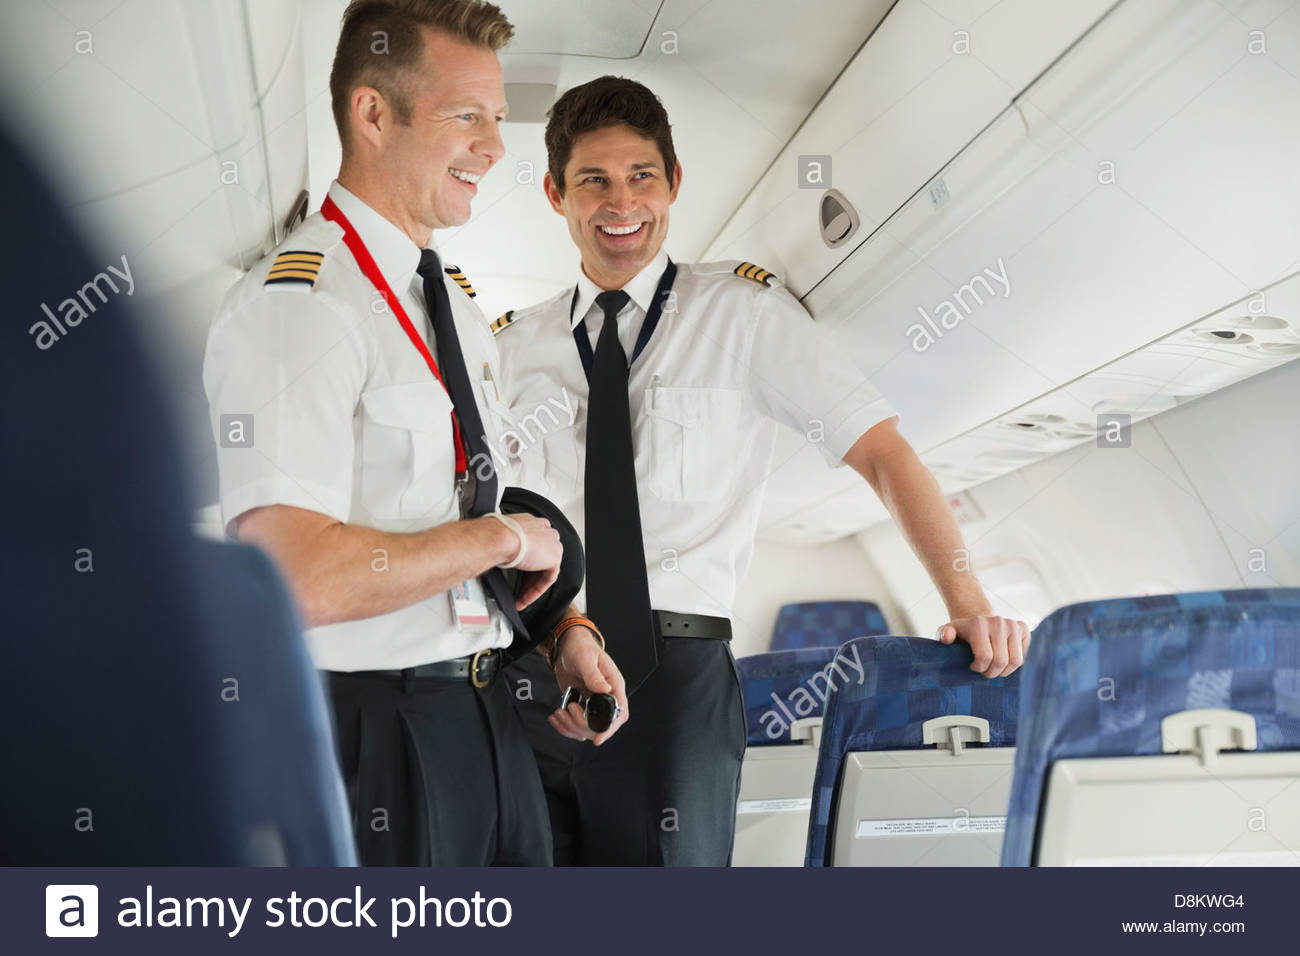 Smiling male pilot and co-pilot standing in airplane cabin - Stock Image